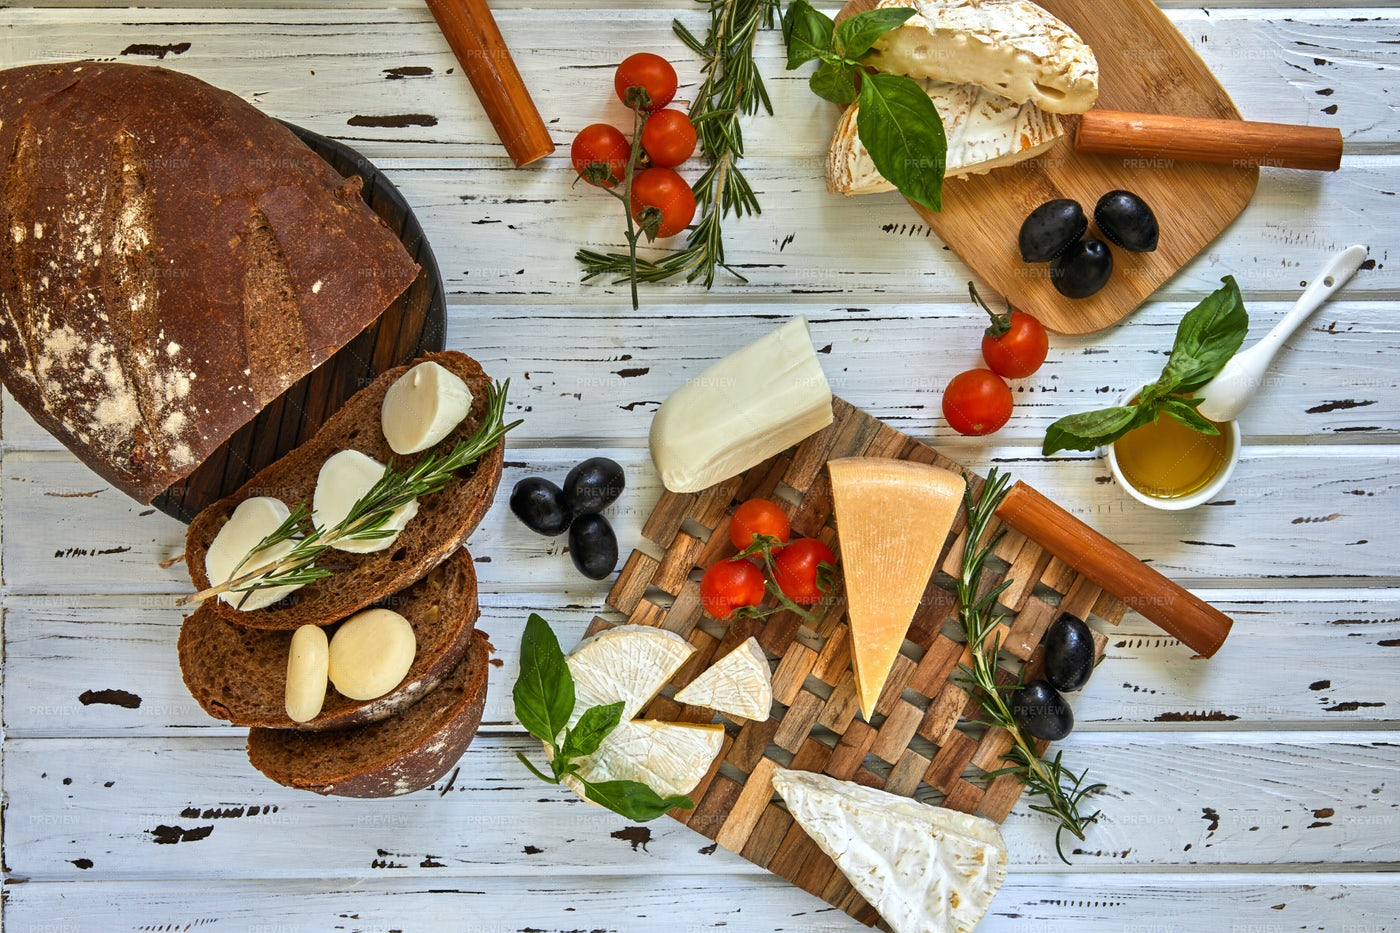 Cheese Boards With Bread: Stock Photos